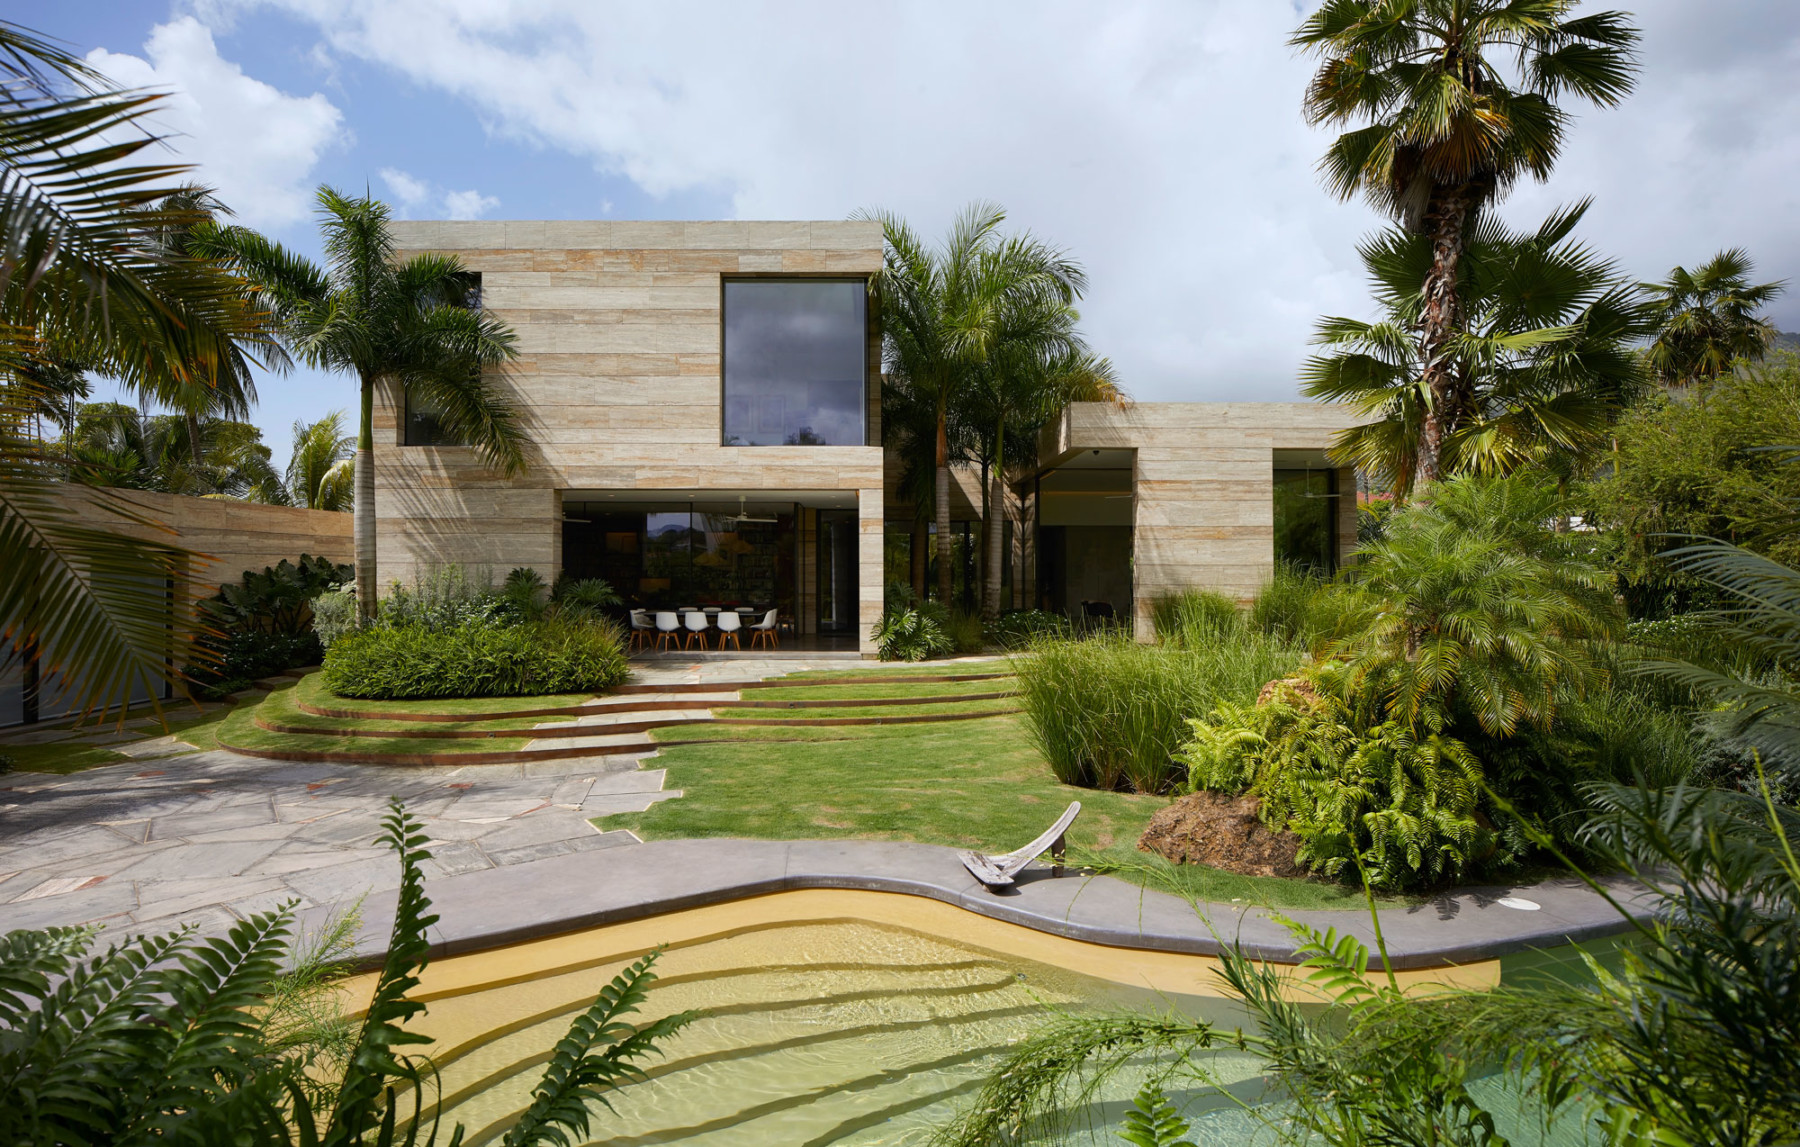 Jamie-Fobert-Architects travertine-house Port-of-Spain Trinidad Hufton+Crow 035